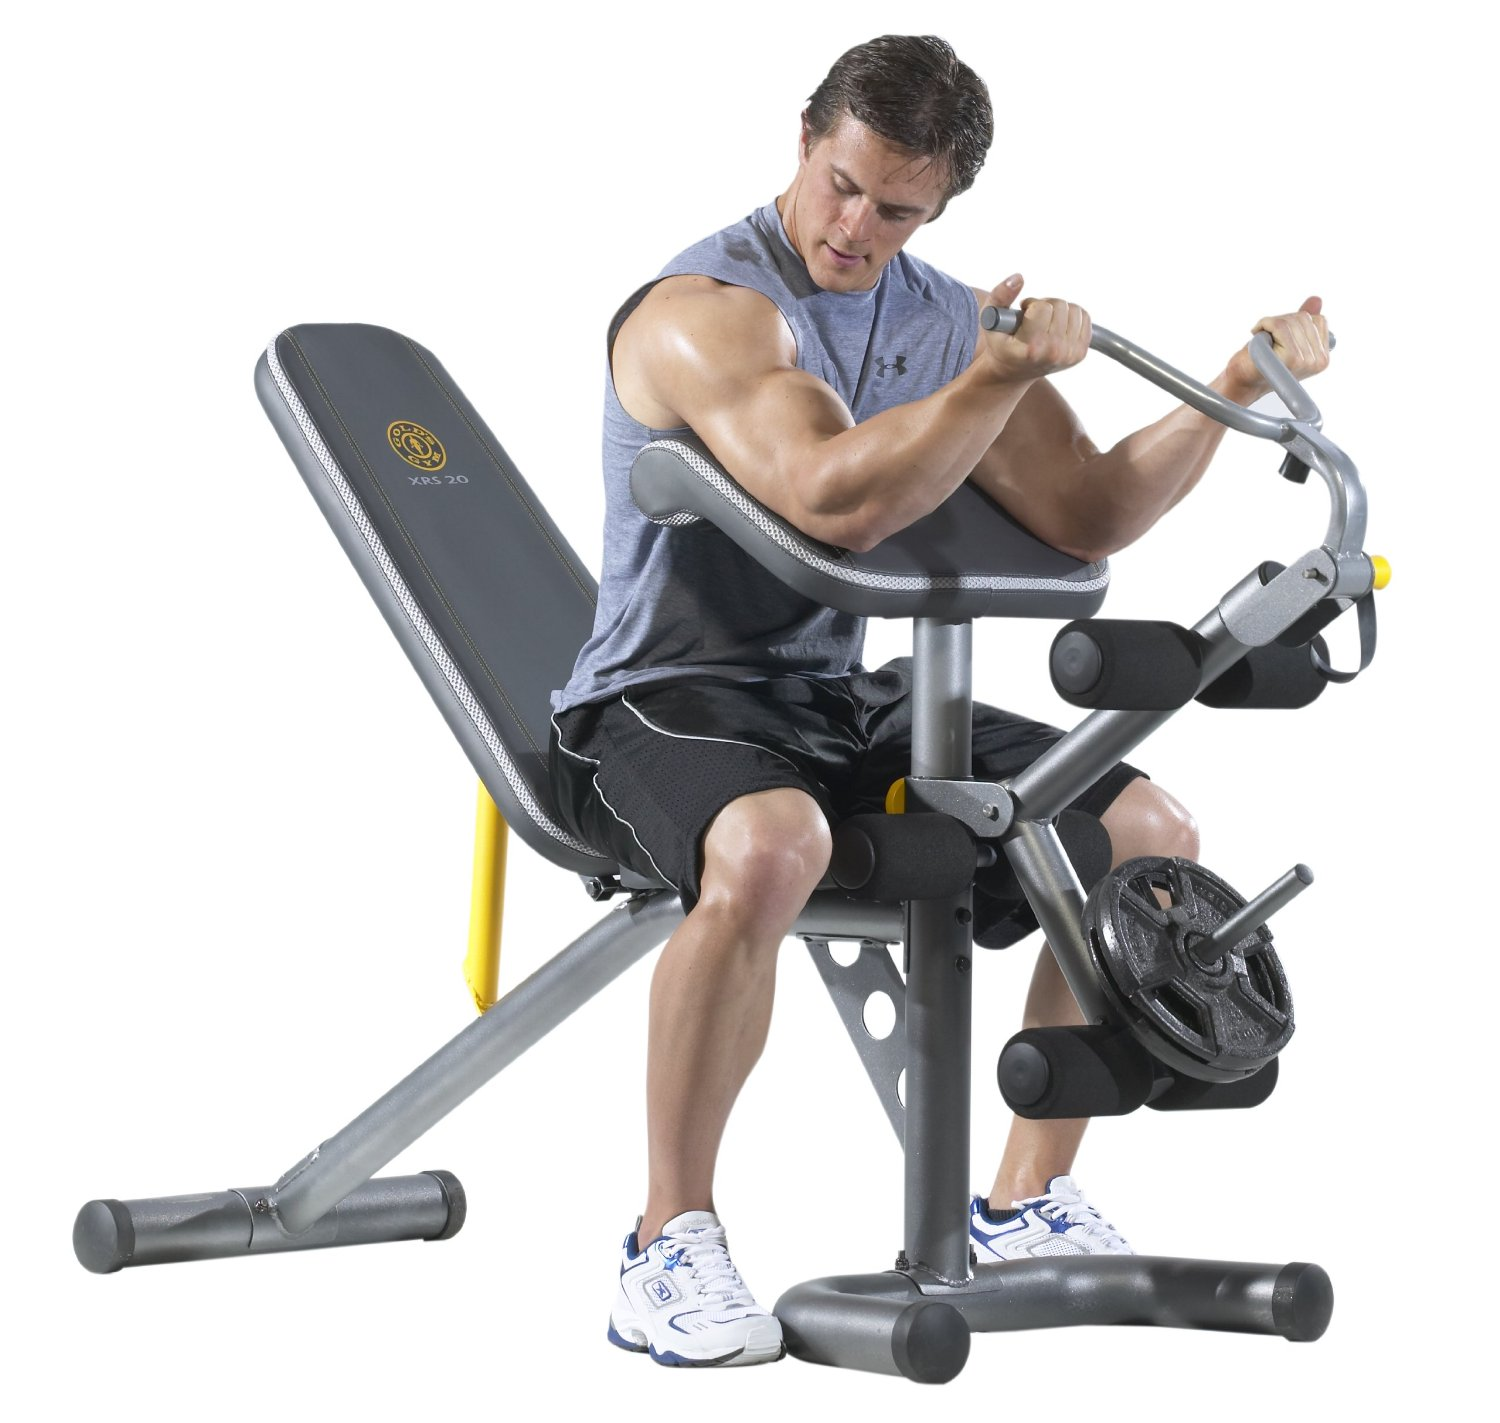 Gold's Gym XRS 20 Olympic Bench Review